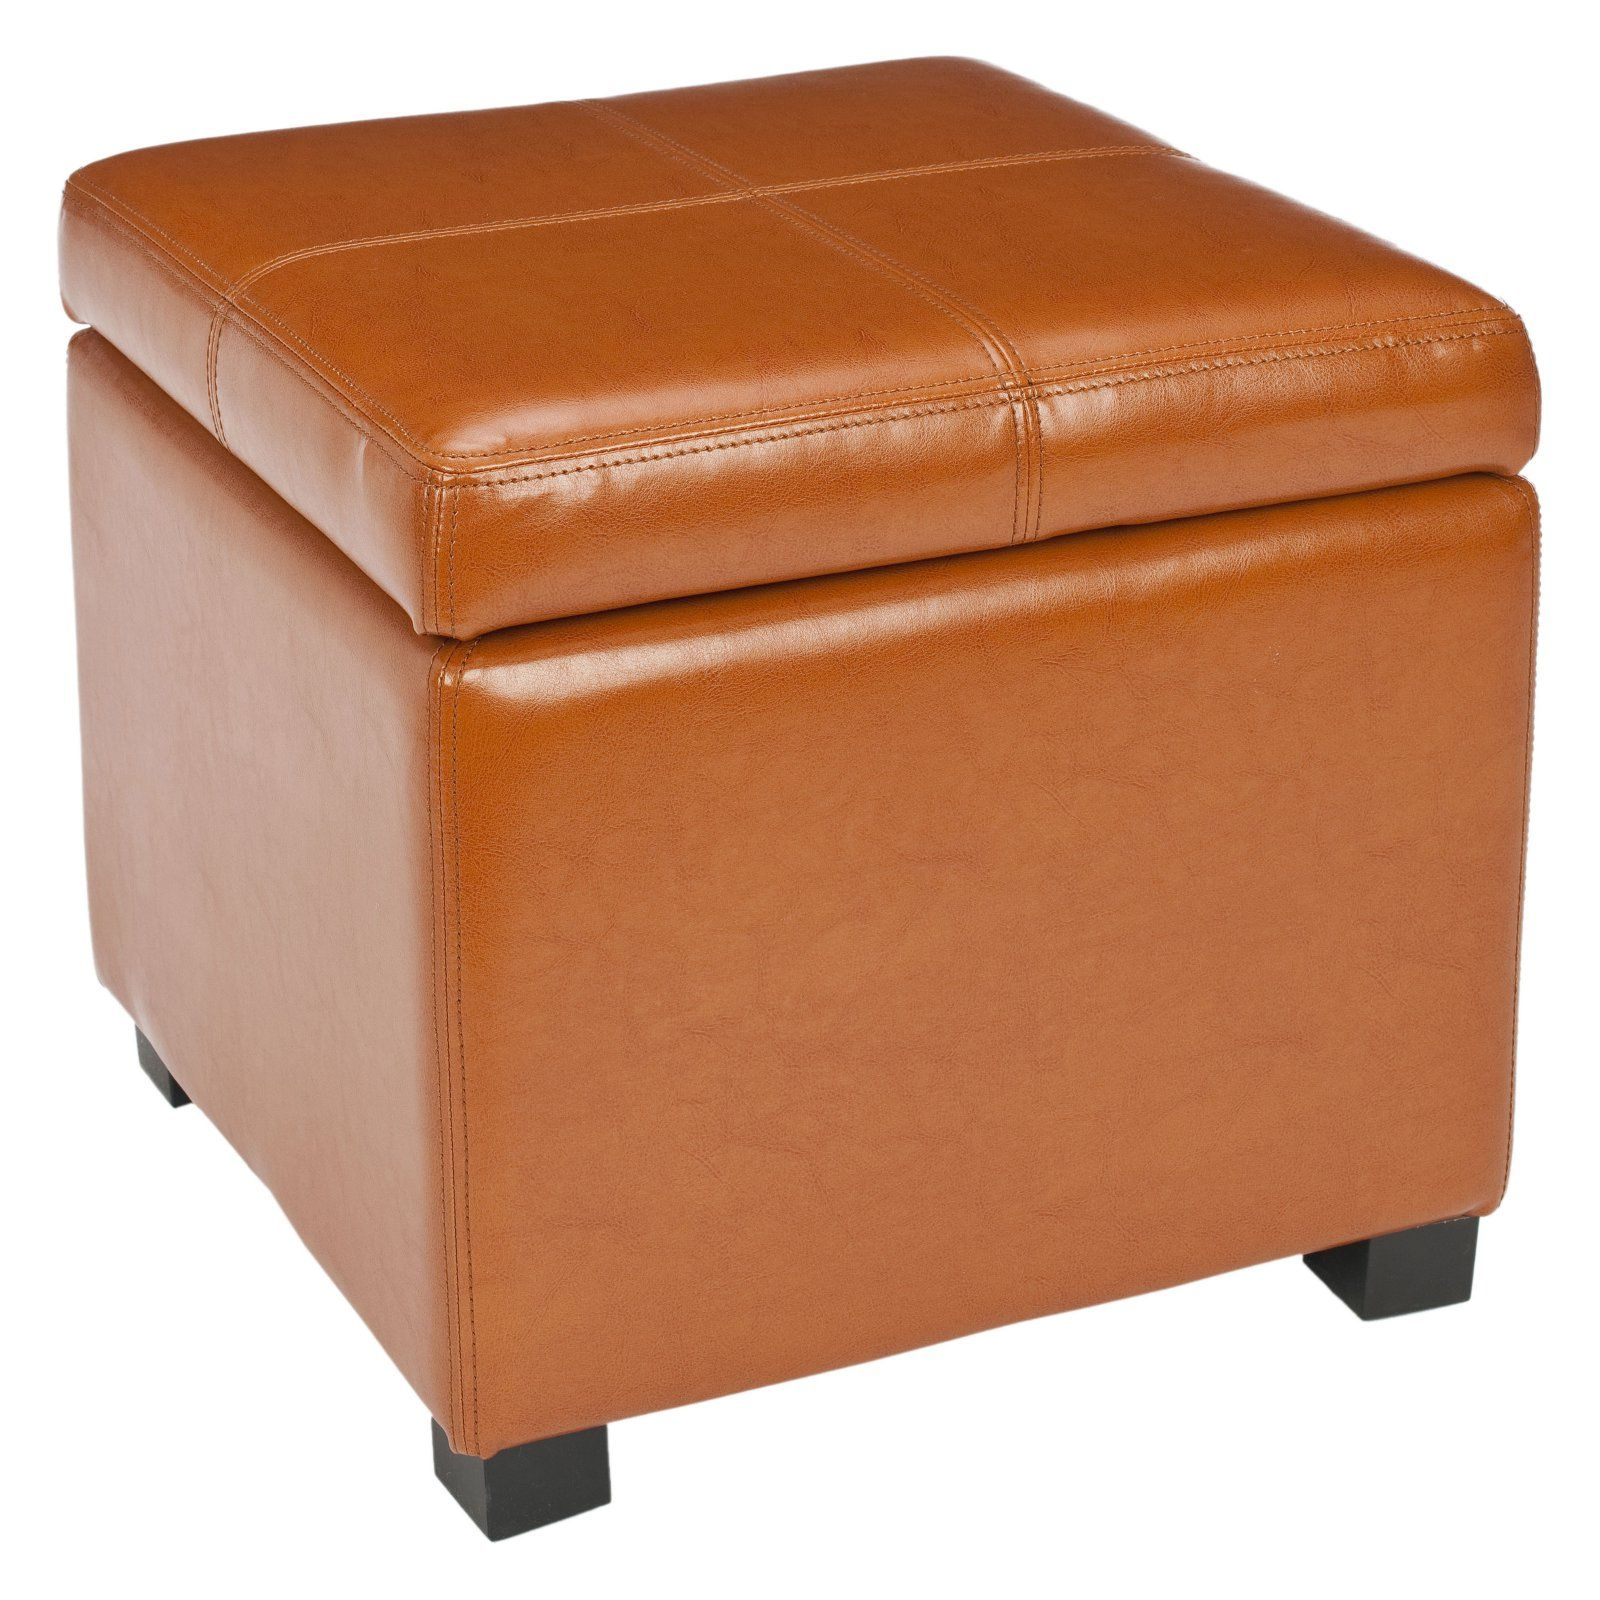 Marvelous Safavieh Madison Square Leather Ottoman Saddle Products In Squirreltailoven Fun Painted Chair Ideas Images Squirreltailovenorg